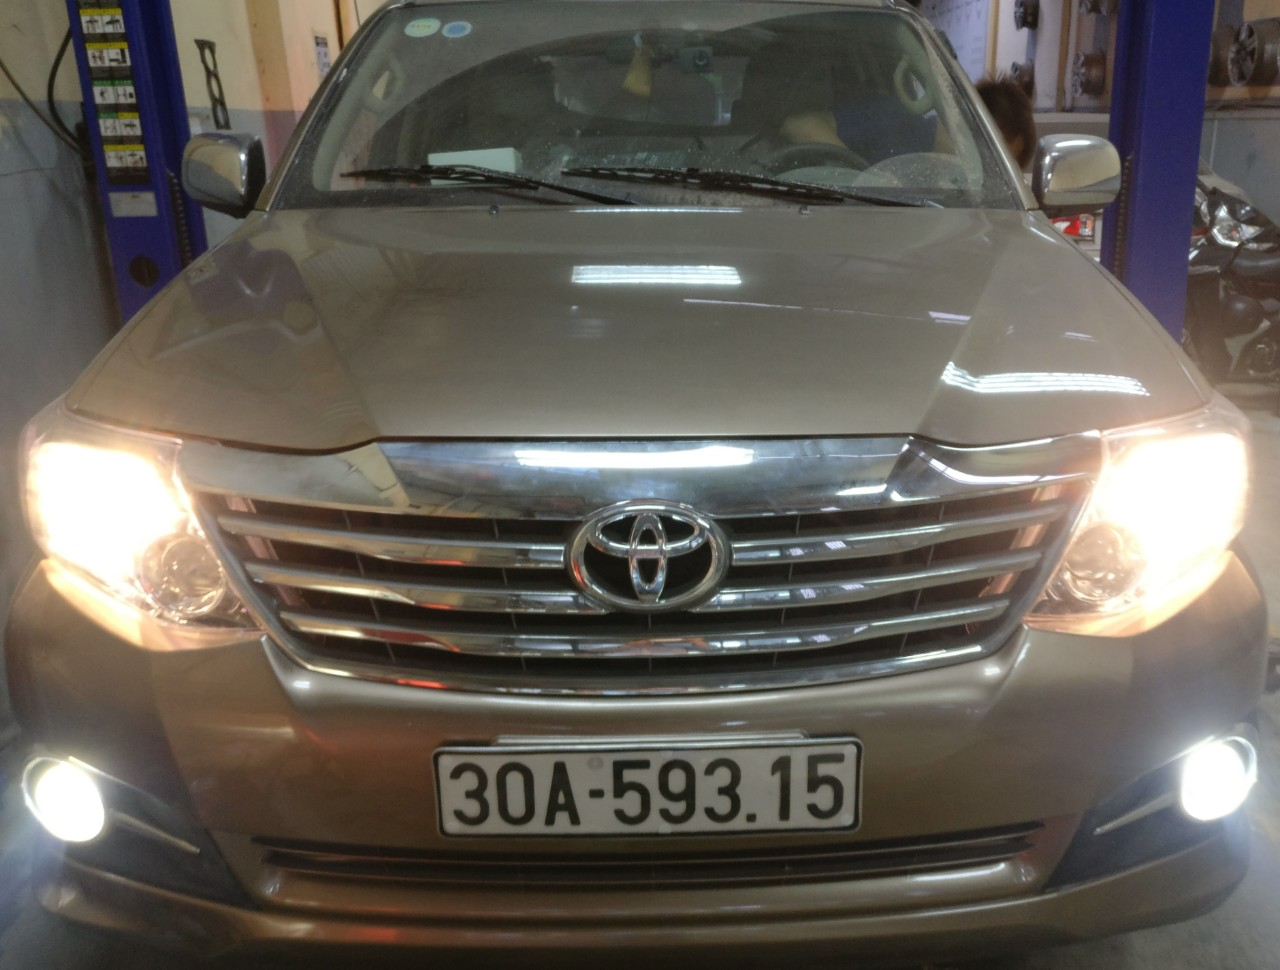 nang-doi-xe-toyota-fortuner